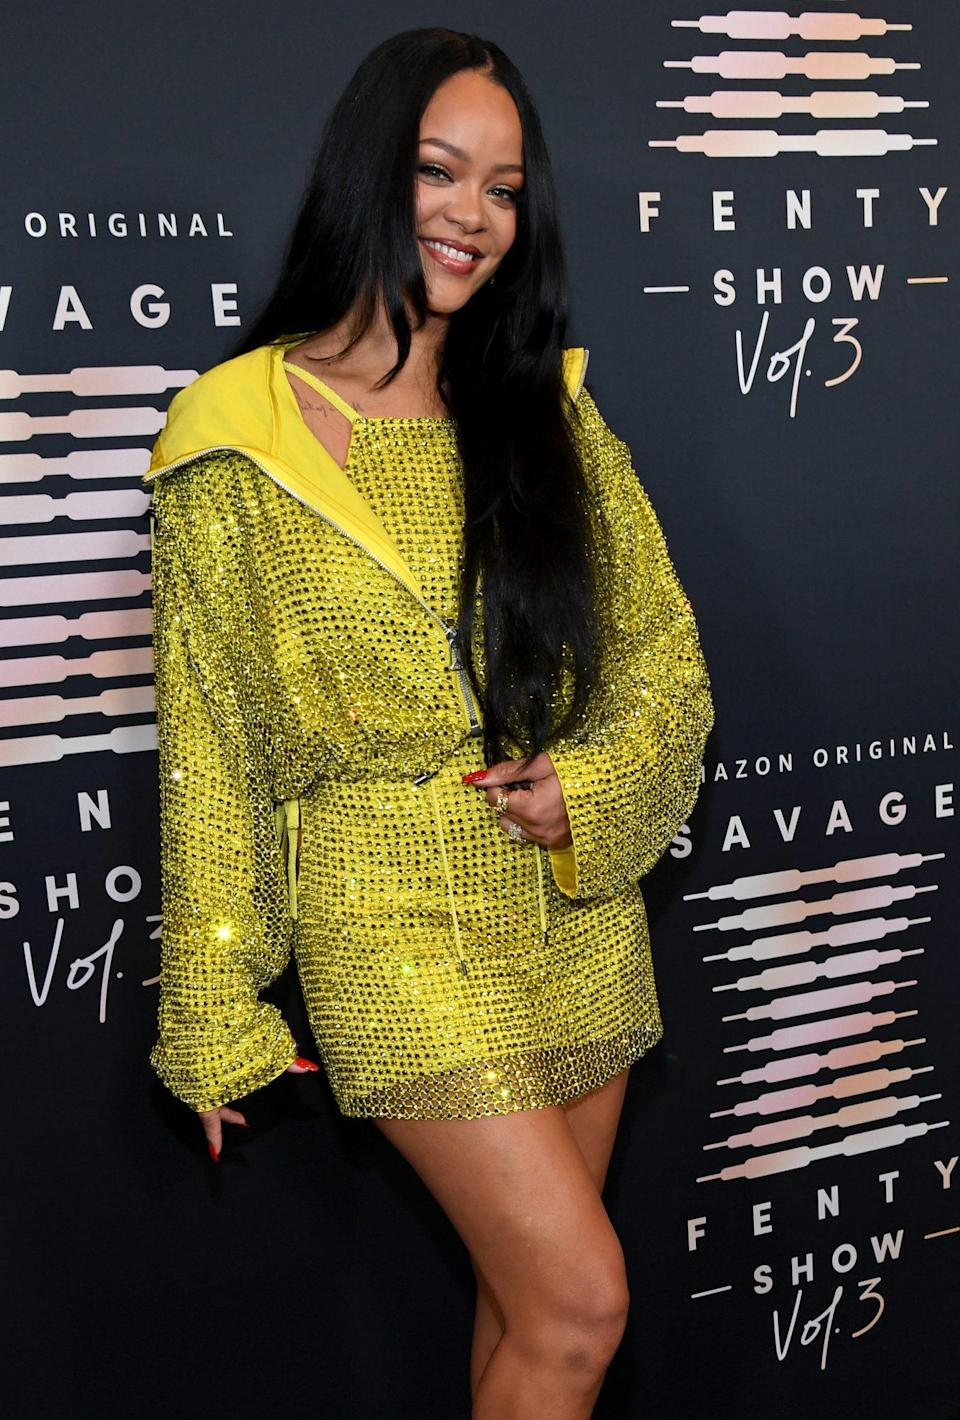 <p>Rihanna celebrates her Savage X Fenty Vol. 3 show in Los Angeles on Sept. 21 with a star-studded red carpet ahead of the runway show. </p>